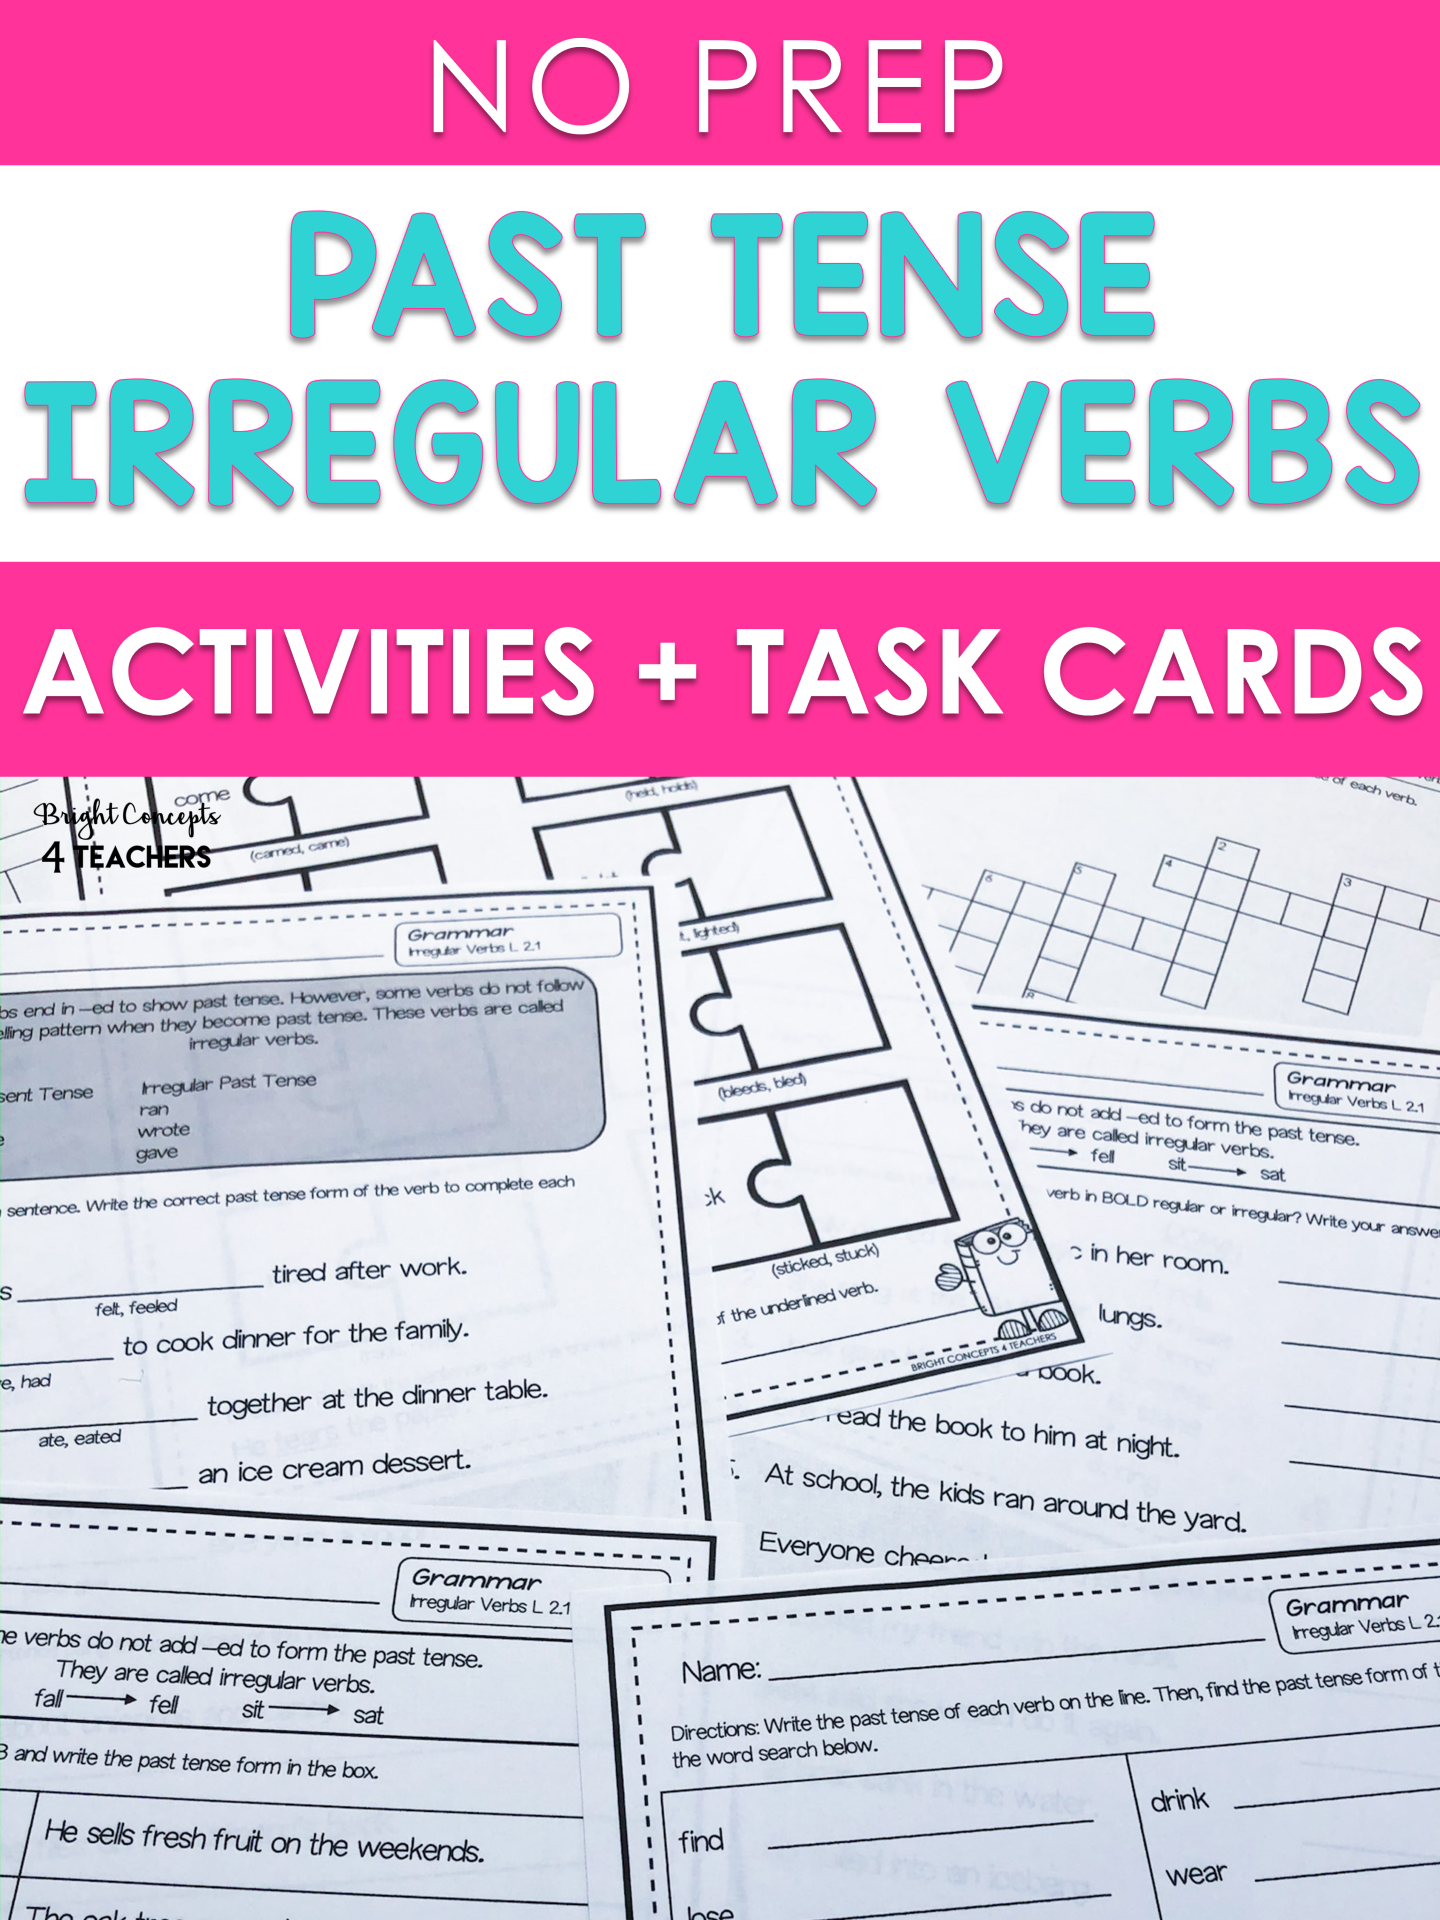 Irregular Past Tense Verbs No Prep Activities Task Cards